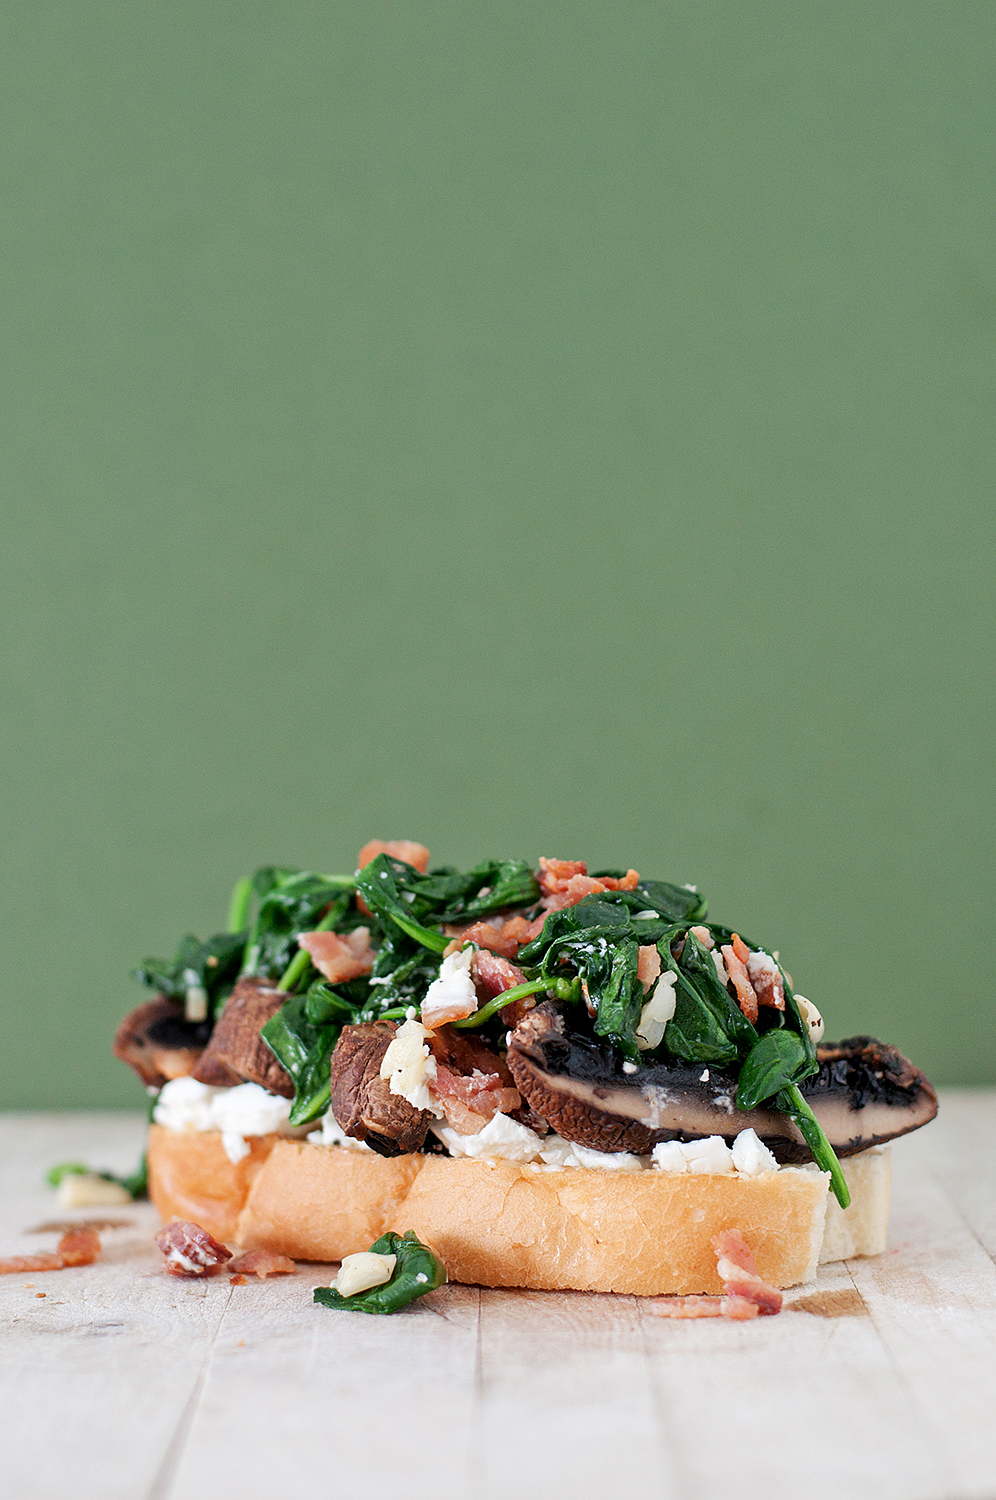 Grilled Portobello Mushroom And Goat Cheese Sandwich With ...